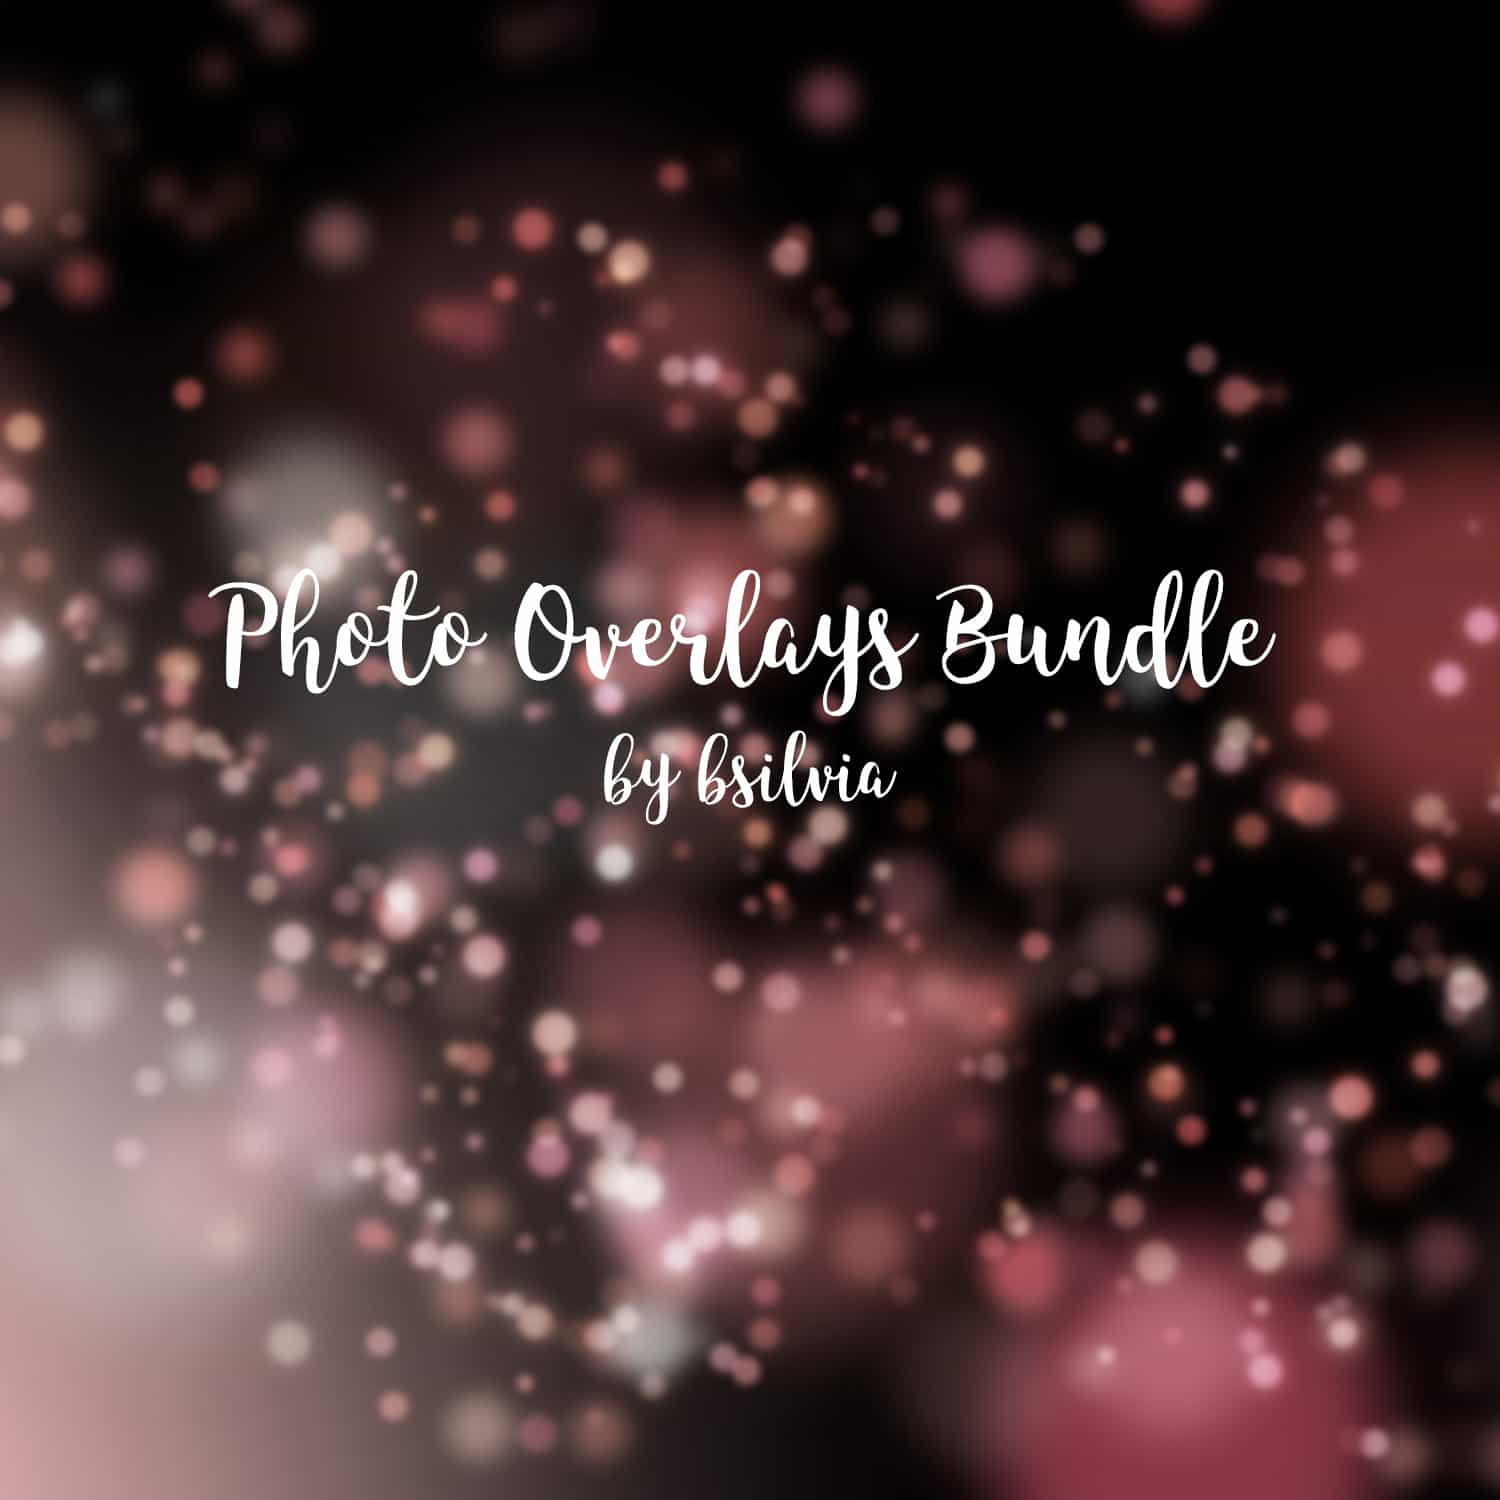 750+ Sparkly Photo Overlays Bundle-Graphics-Artixty